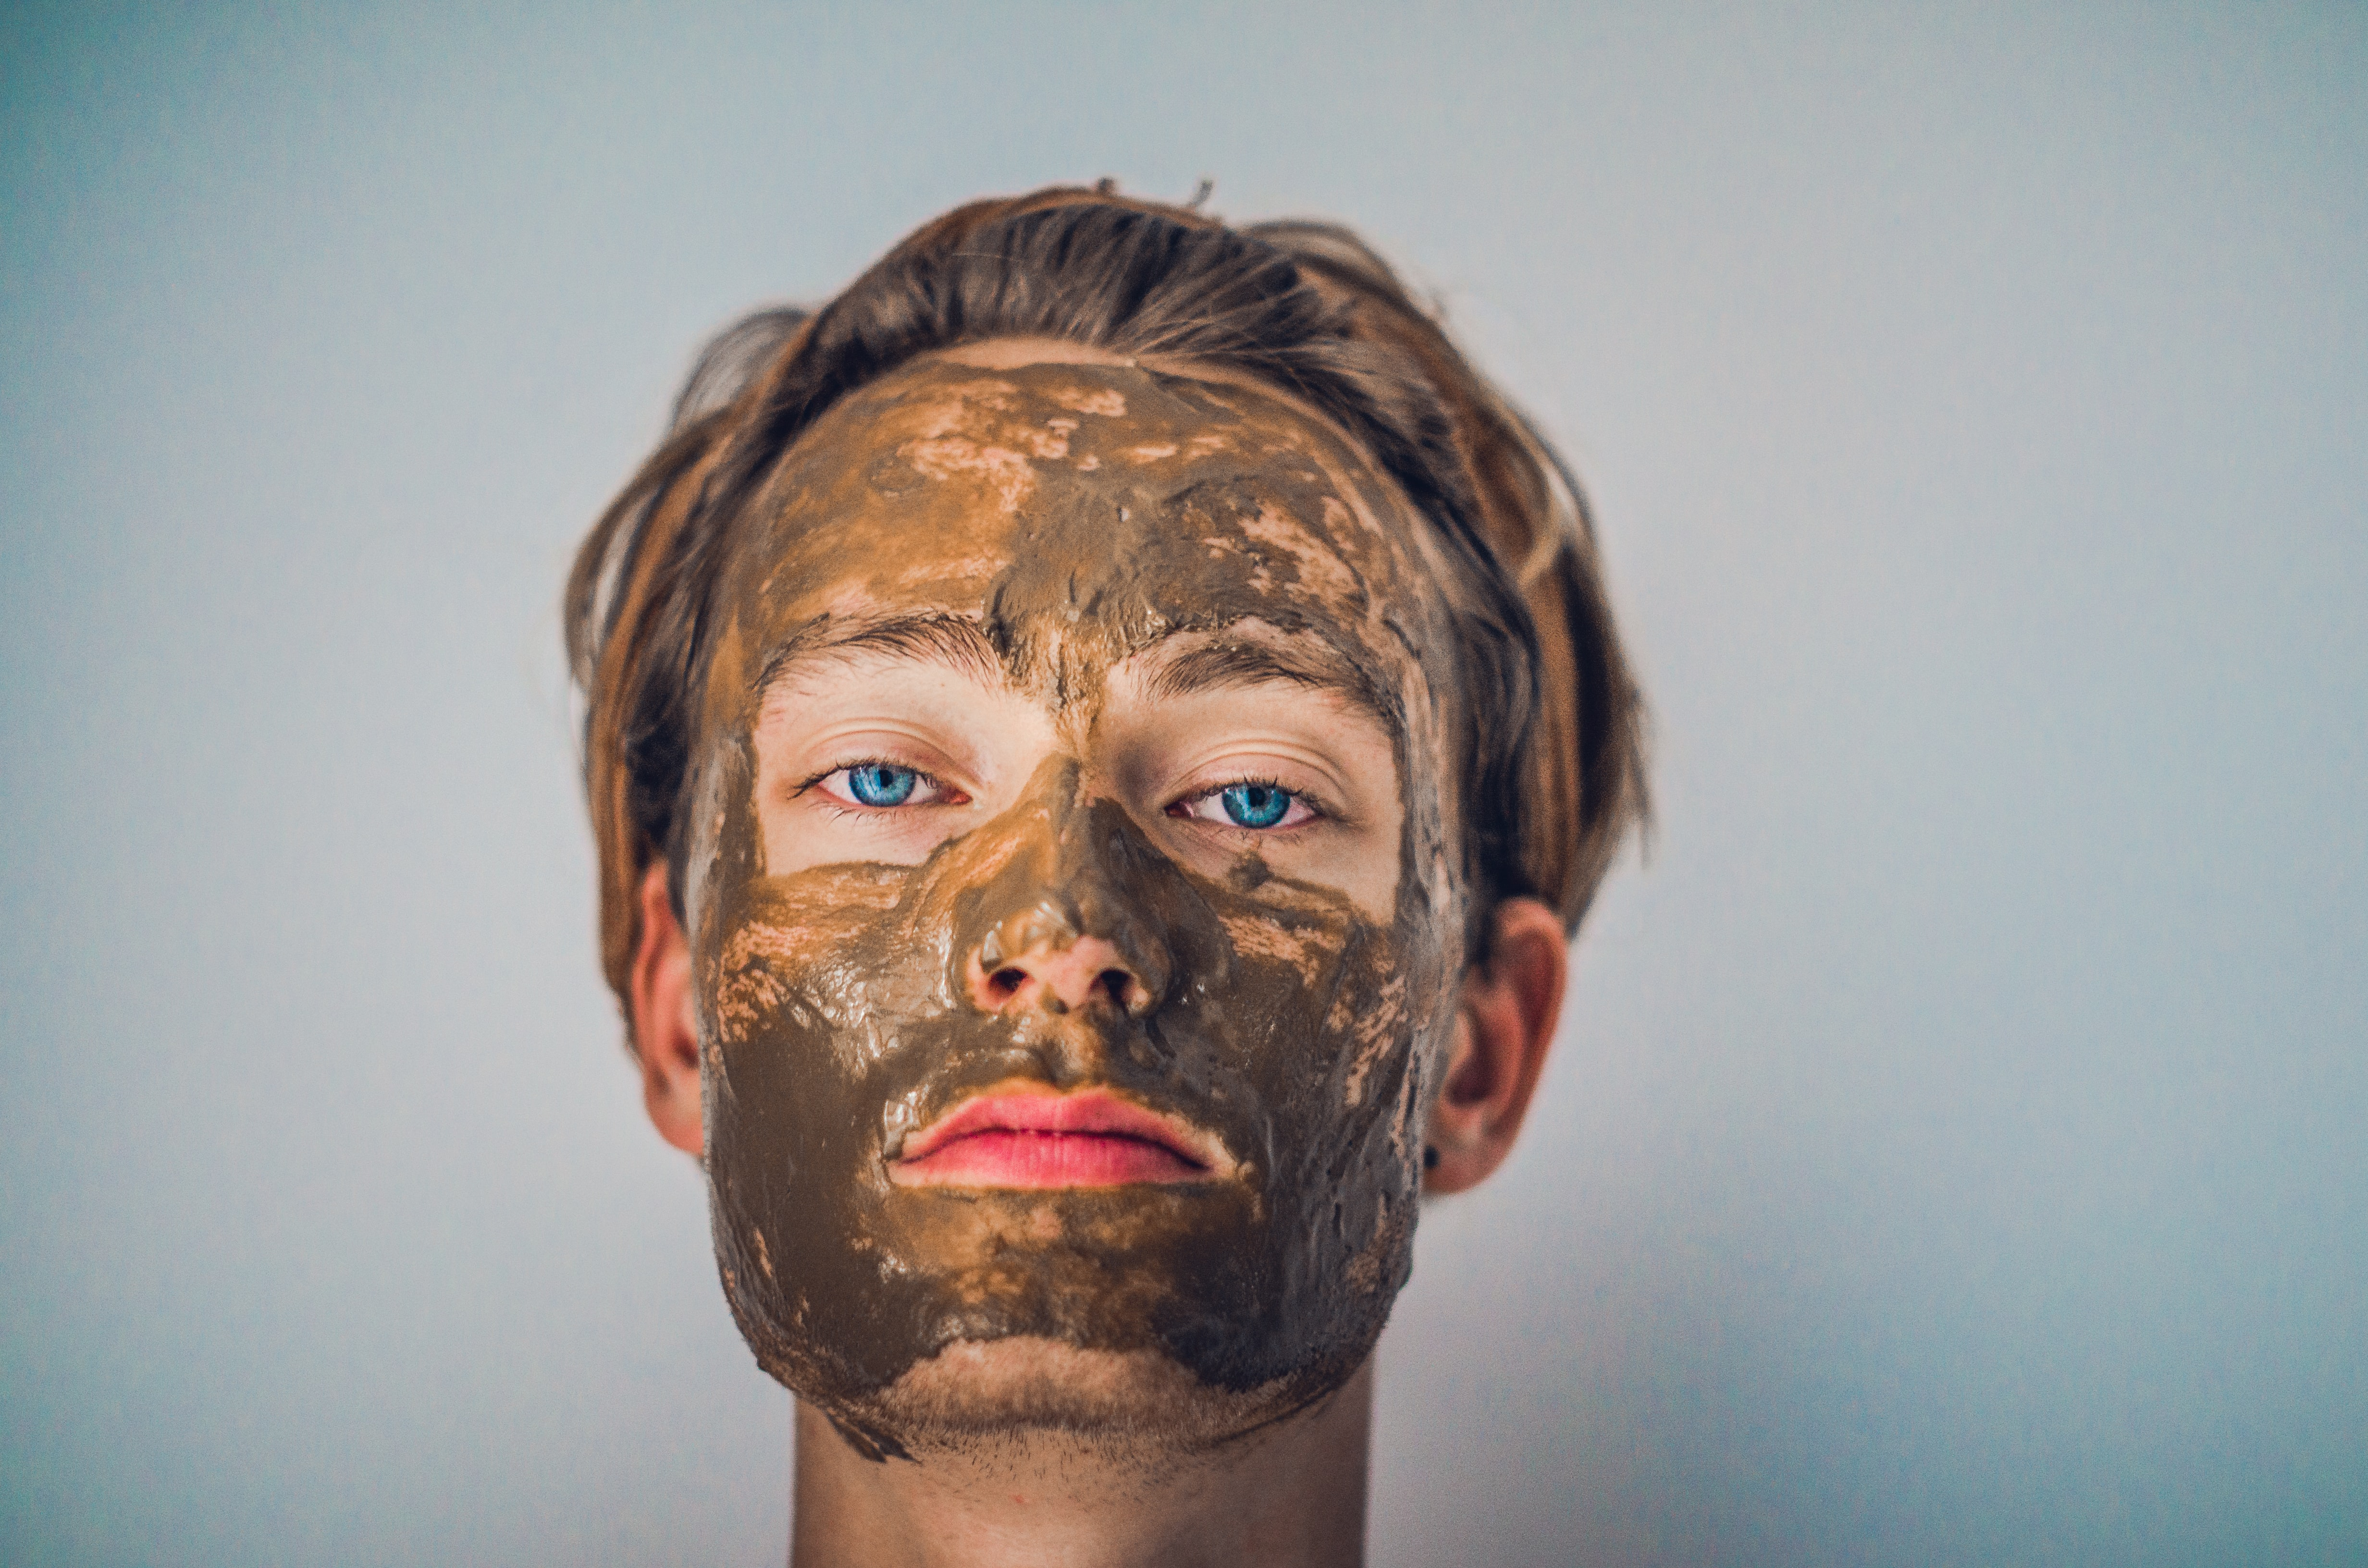 A blue-eyed man with a mud mask on his face